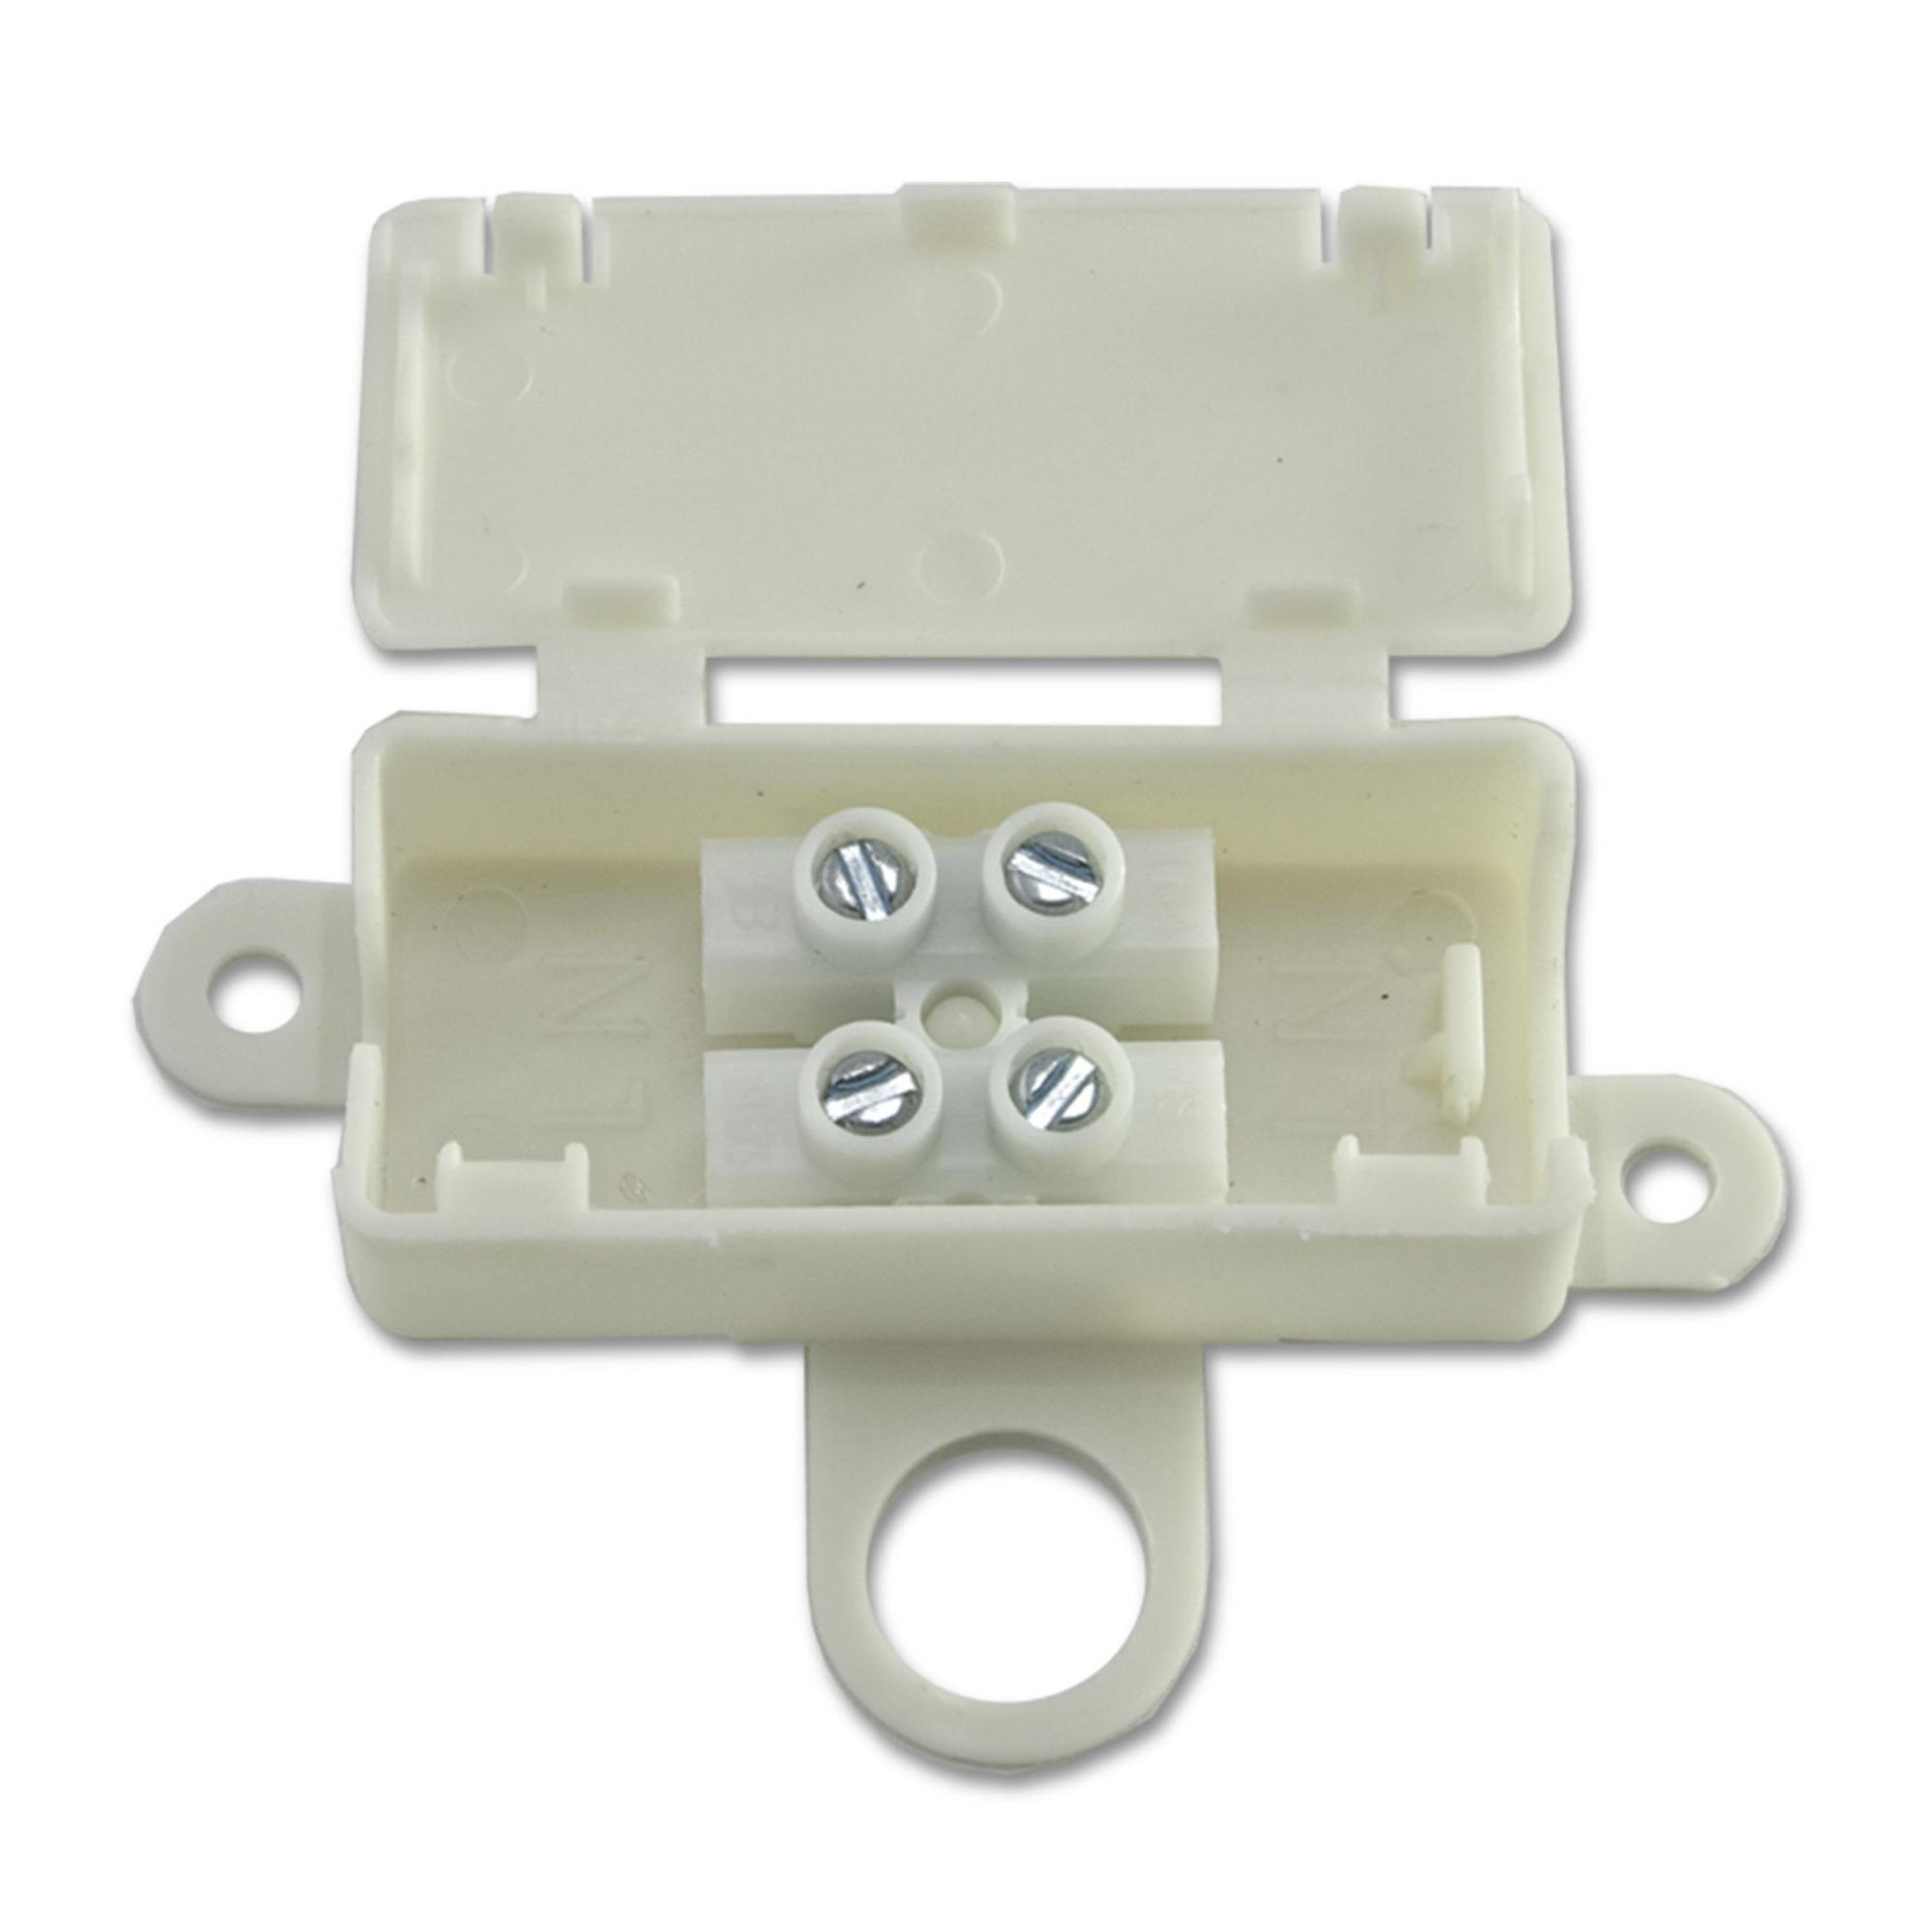 hight resolution of mini terminal junction box